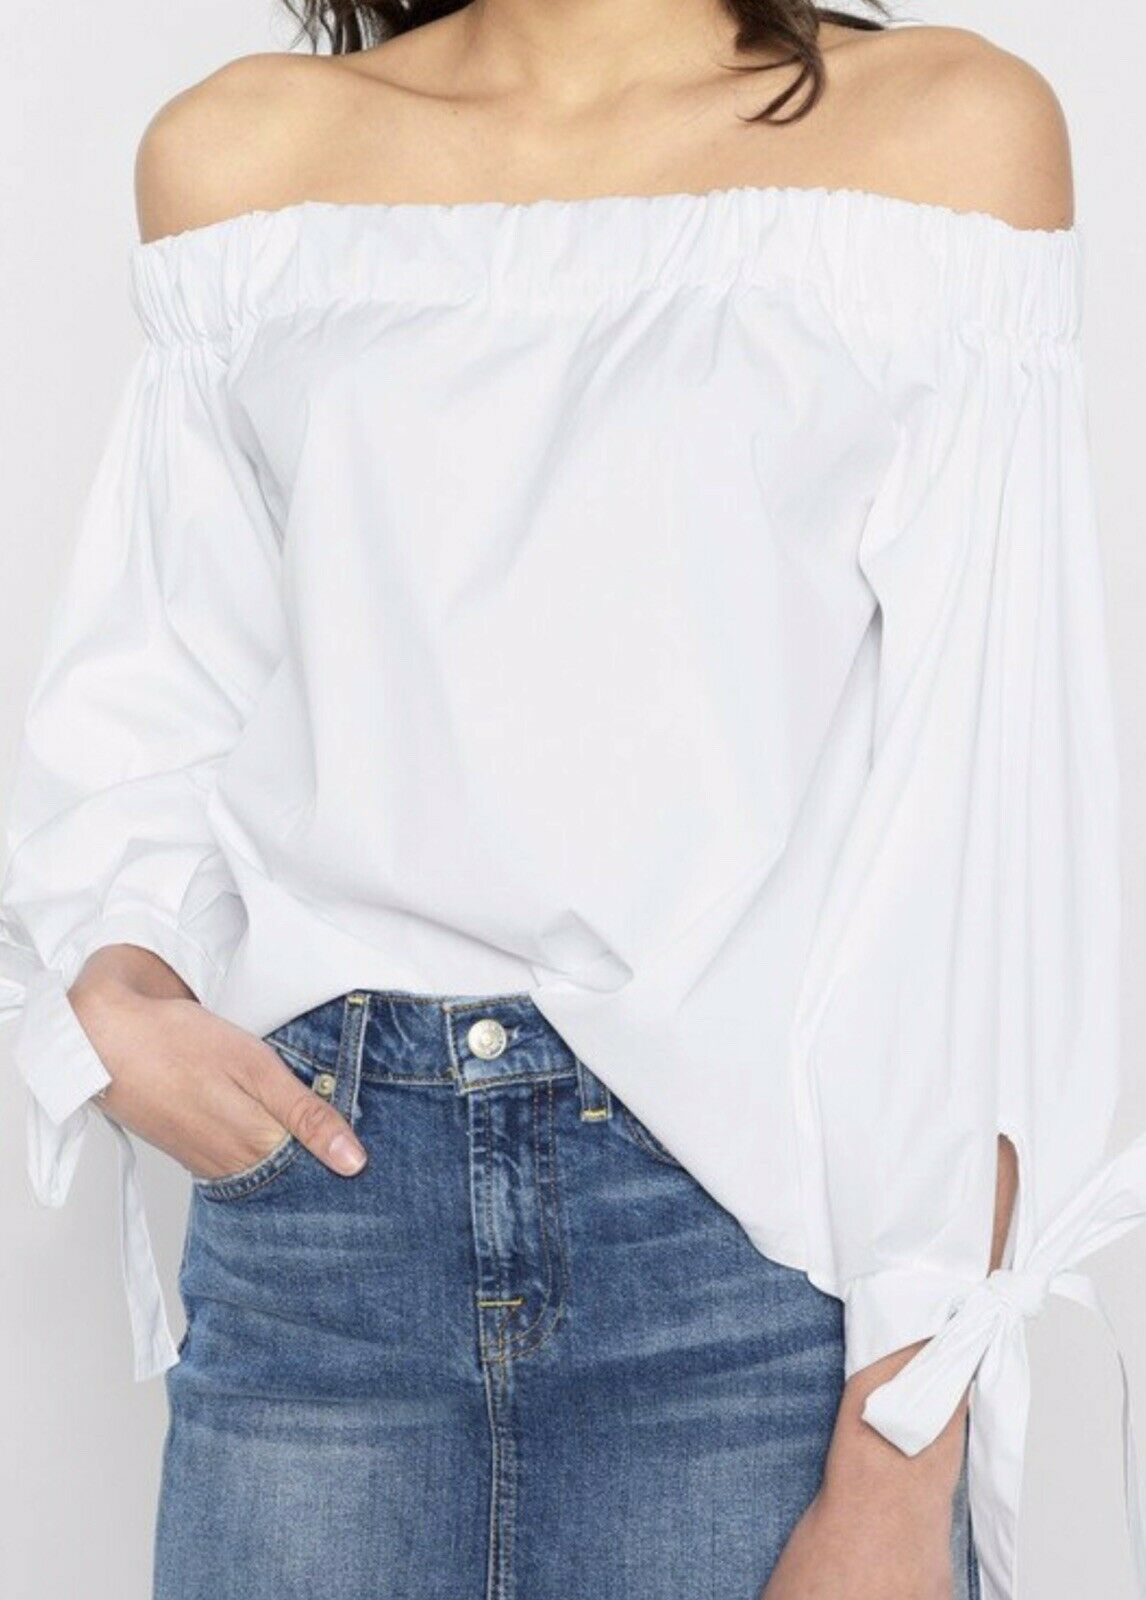 NWT 7 For All Mankind Off The Shoulder Tie Sleeve Weiß Top, Small